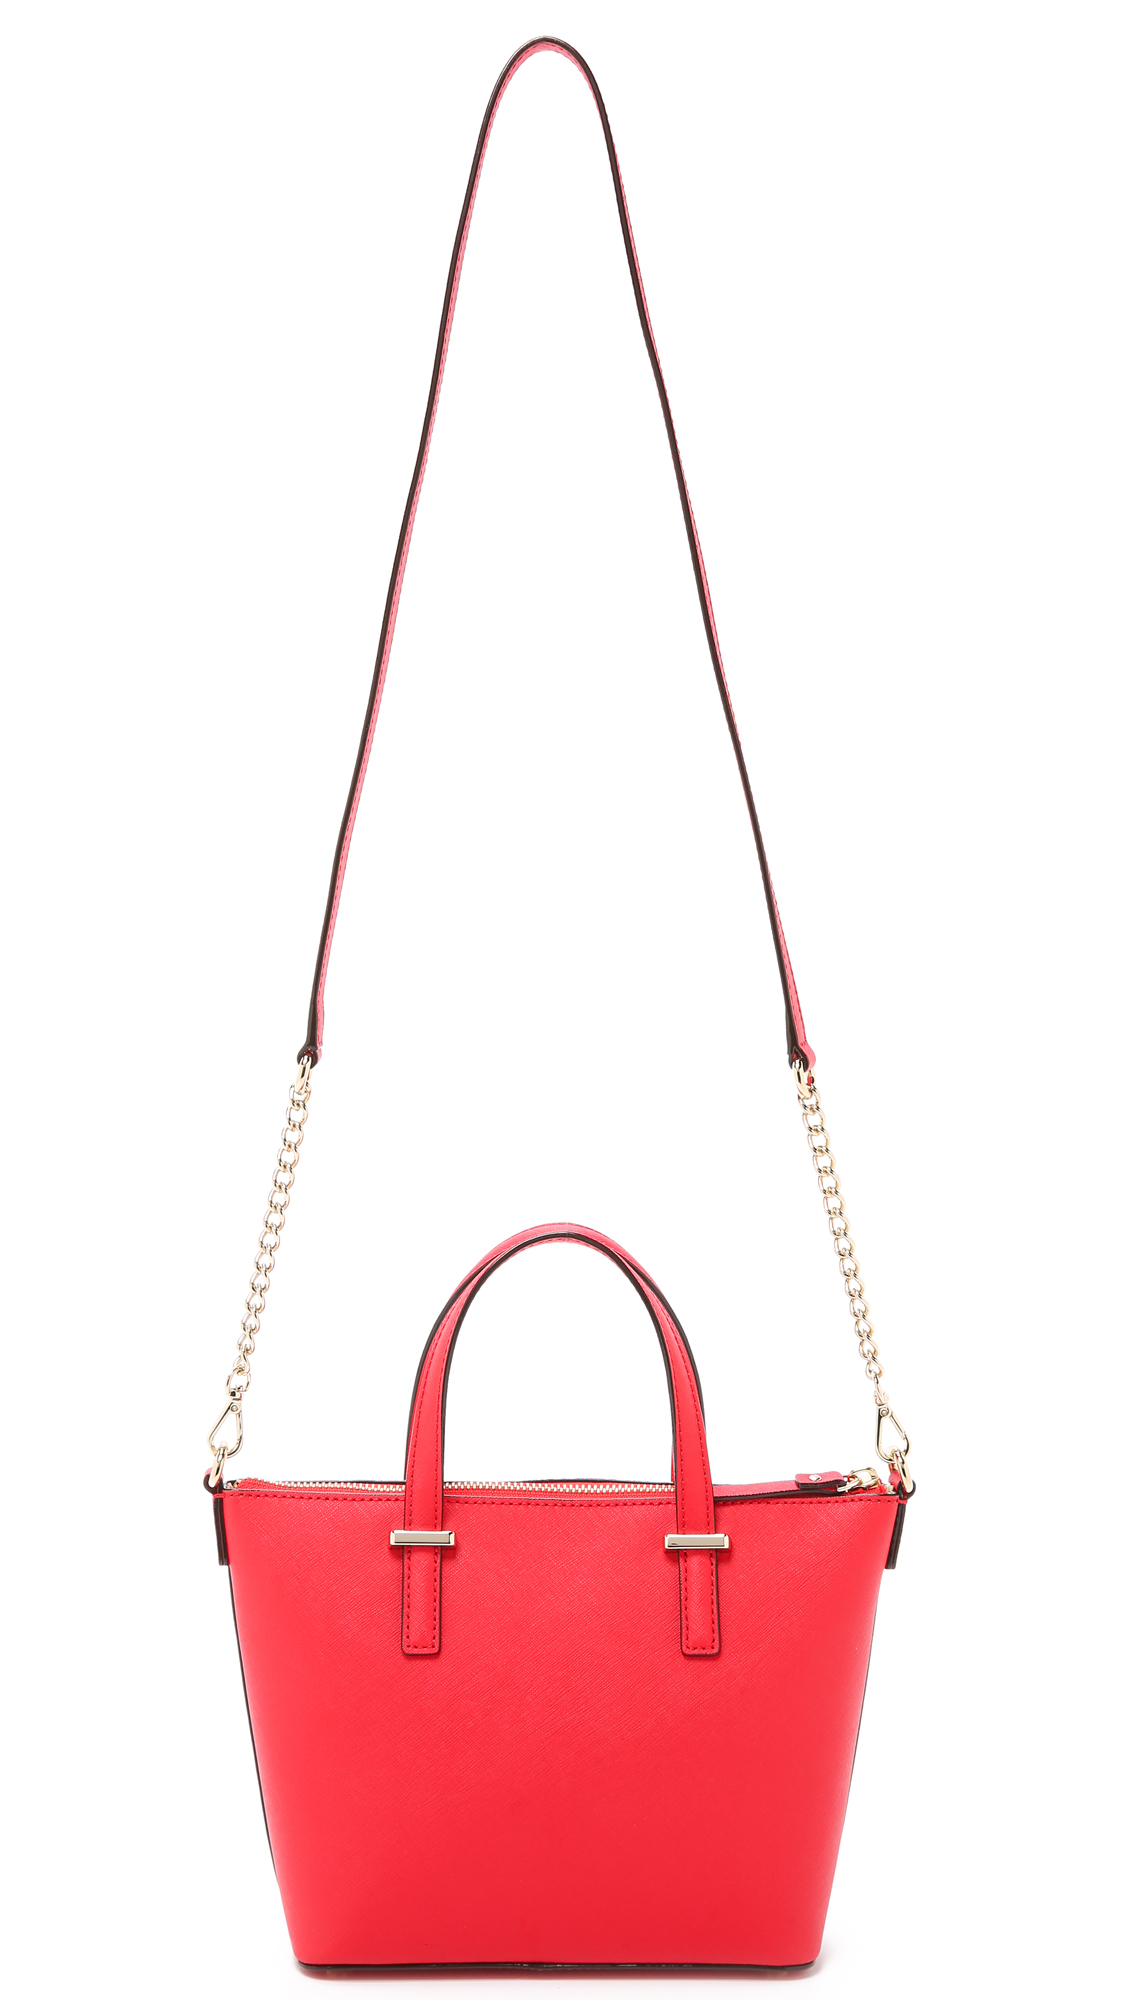 Kate Spade Leather Harmony Cross Body Bag - Cherry Liqueur in Red